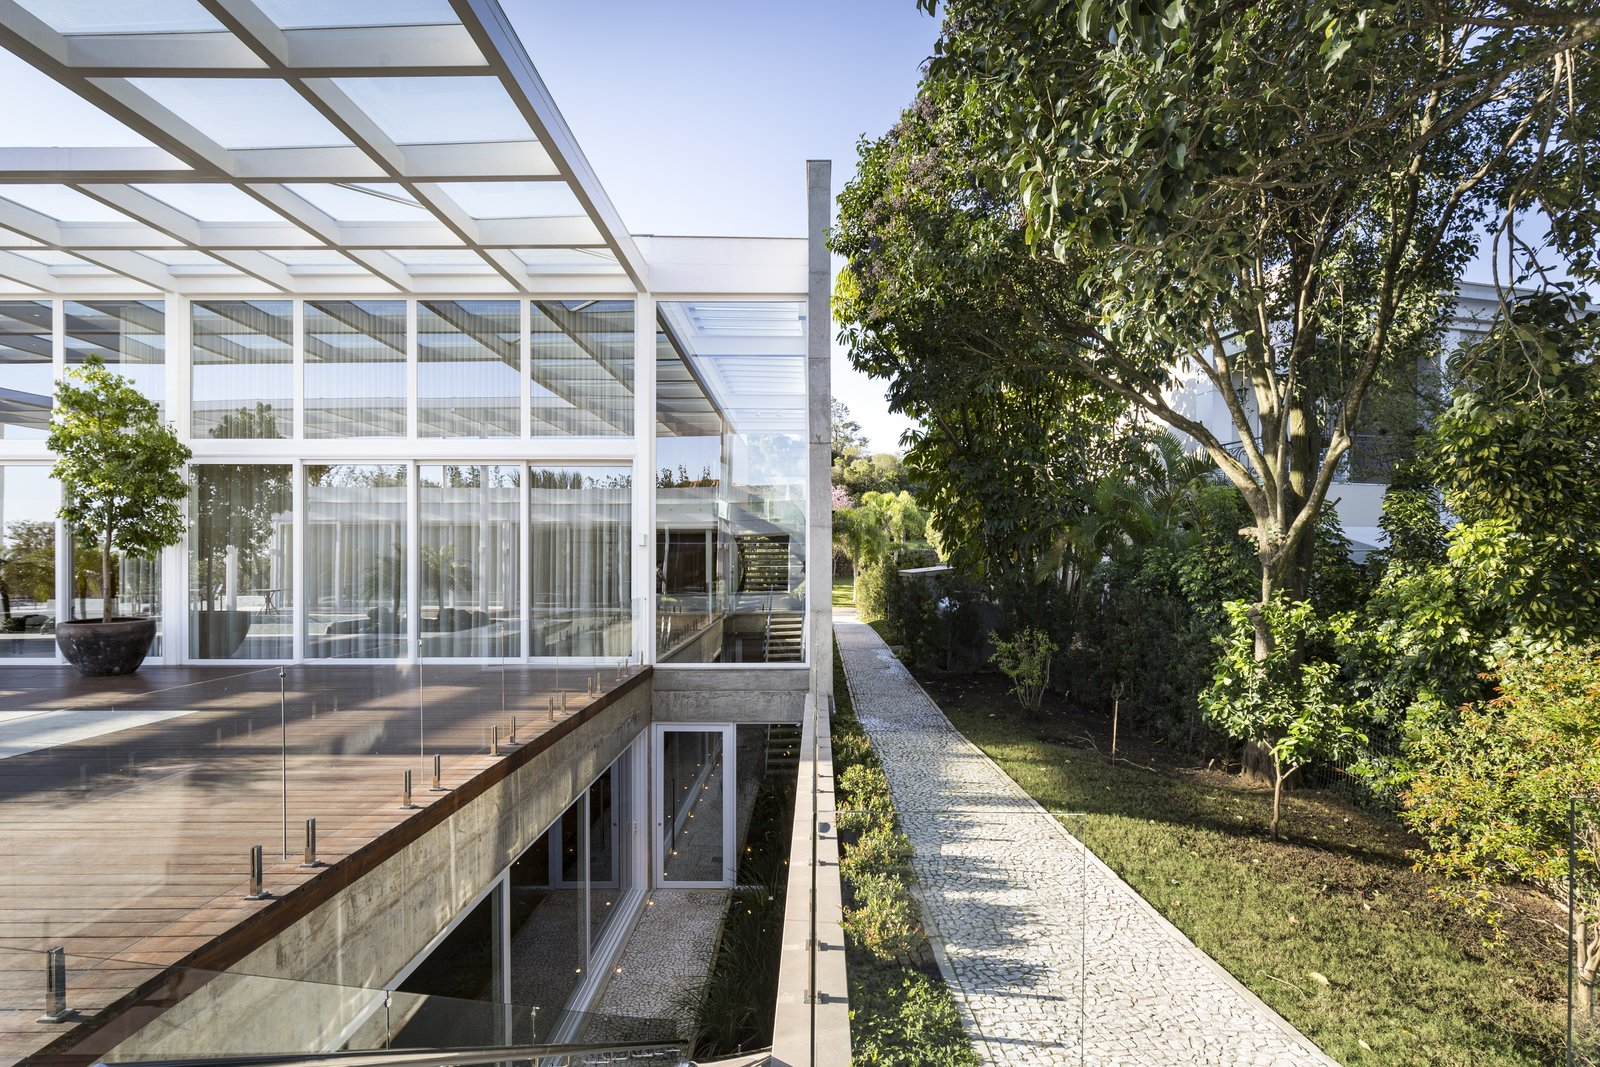 Outdoor, Trees, Back Yard, Grass, Gardens, Walkways, Garden, Large, Wood, Metal, Horizontal, and Landscape  Best Outdoor Large Metal Photos from Jardim do Sol House